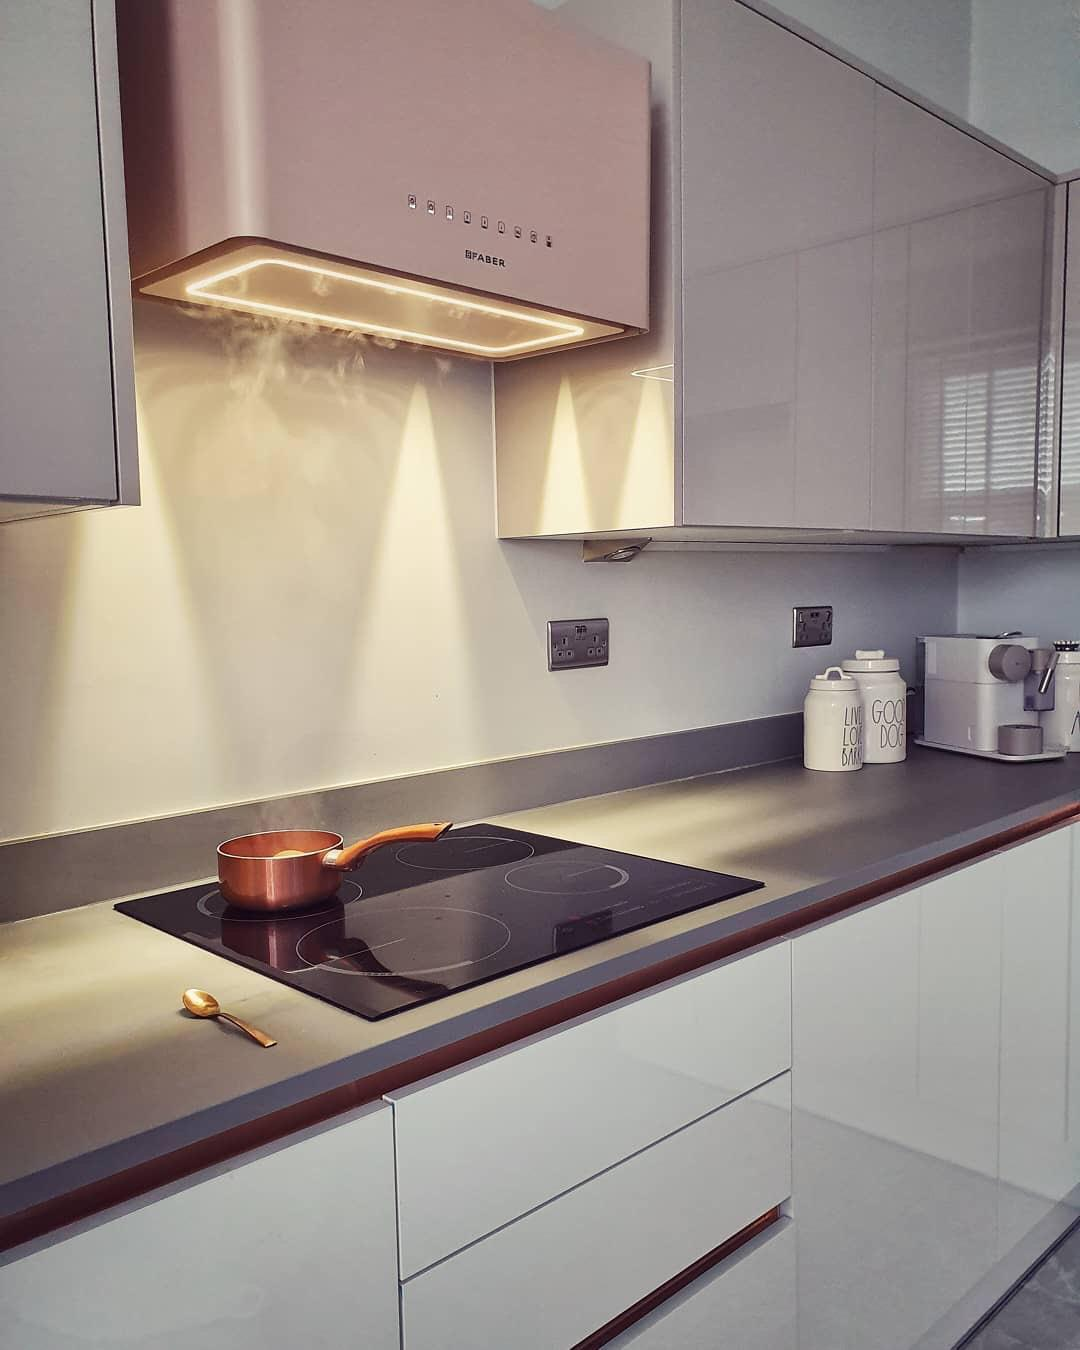 Faber Premium Cooker Hood The Inventors Of The Domestic Cooker Hood